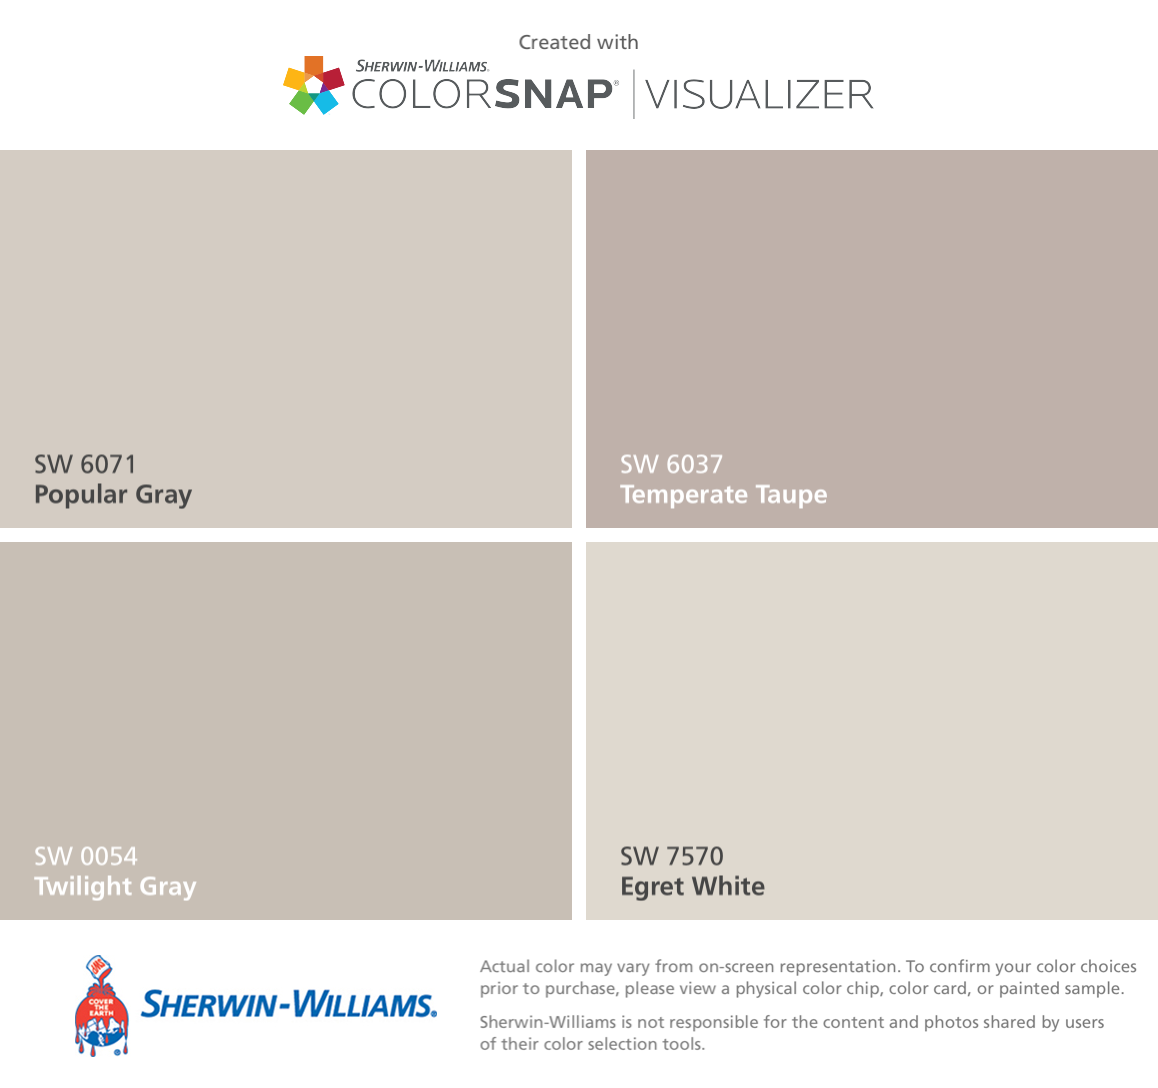 I Found These Colors With Colorsnap Visualizer For Iphone By Sherwin Williams Popular Gray Sw 6071 Twilight Gray Sw 0054 Temp Huisdecoratie Gray Paints